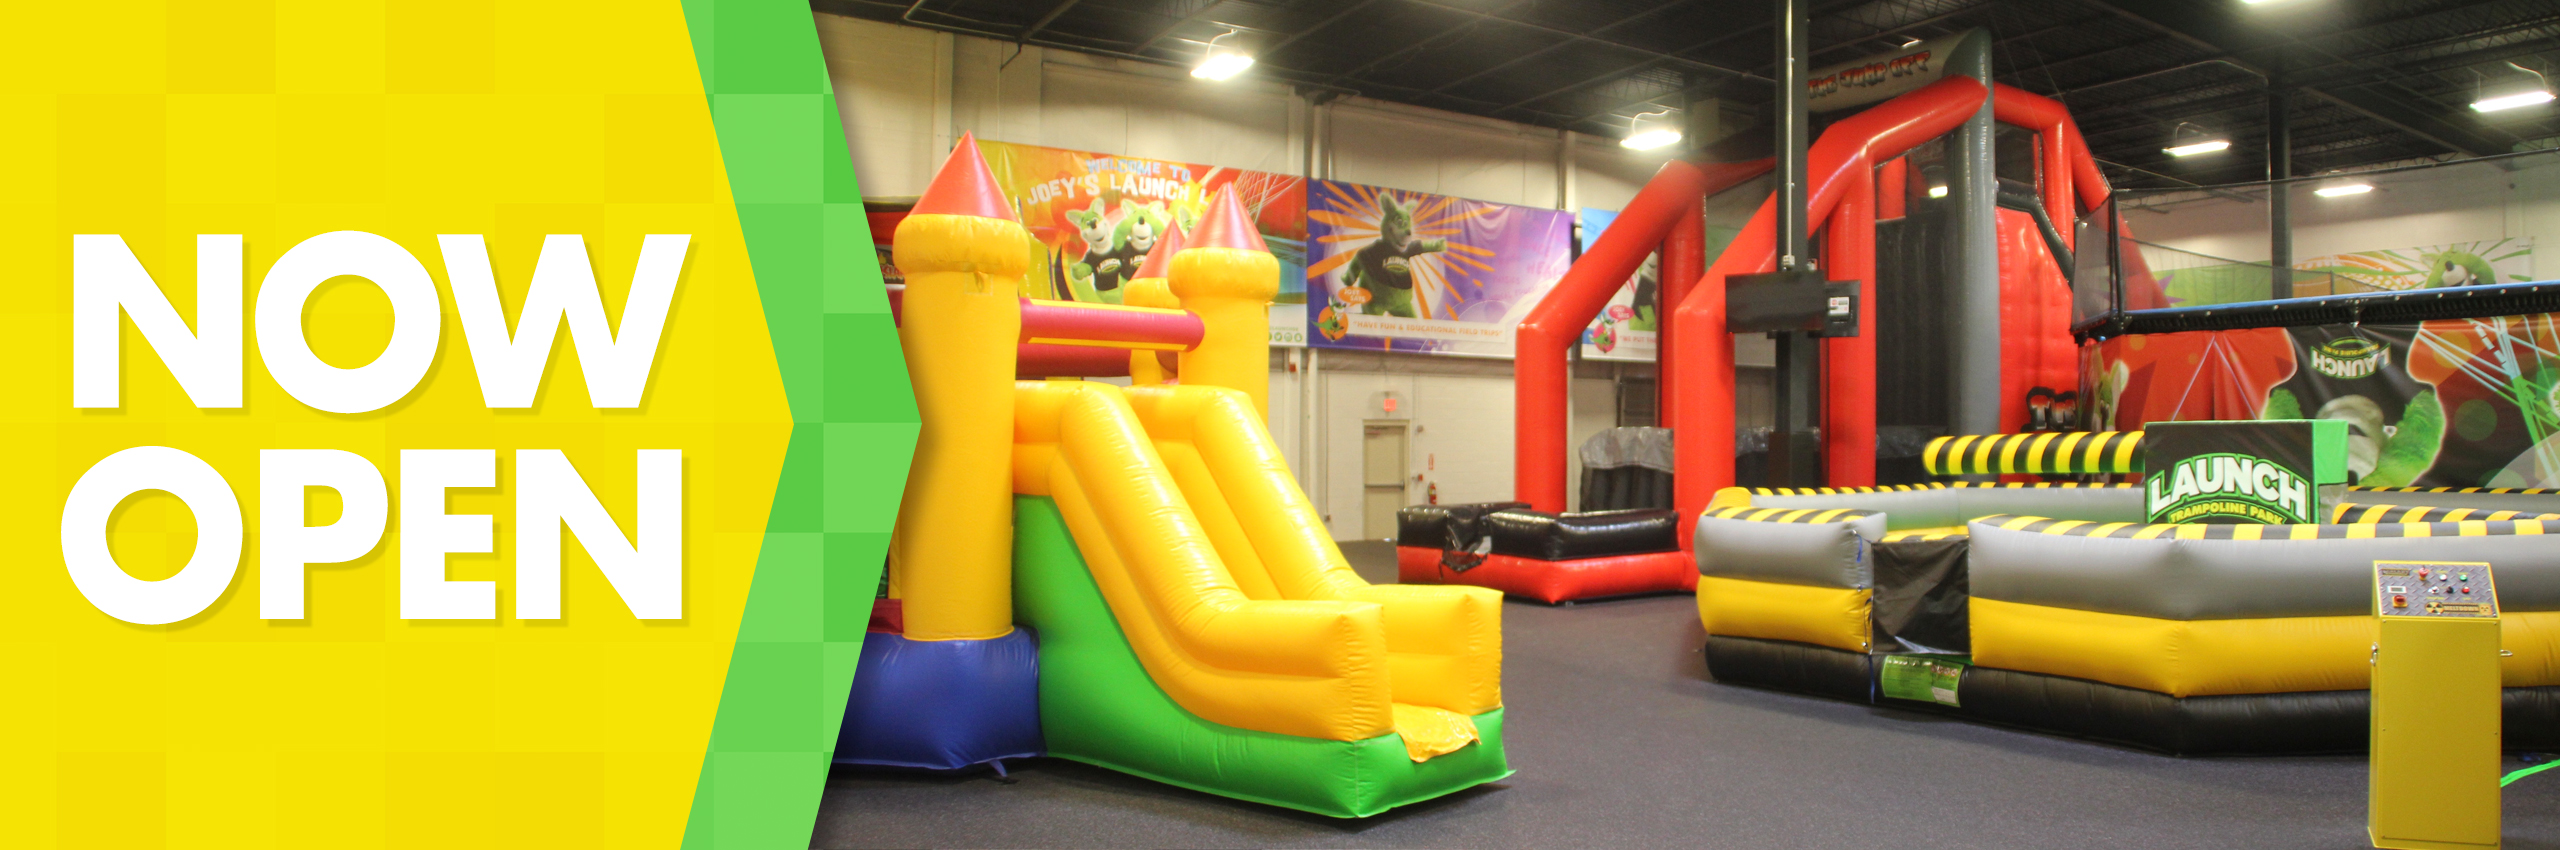 Launch trampoline park coupon code